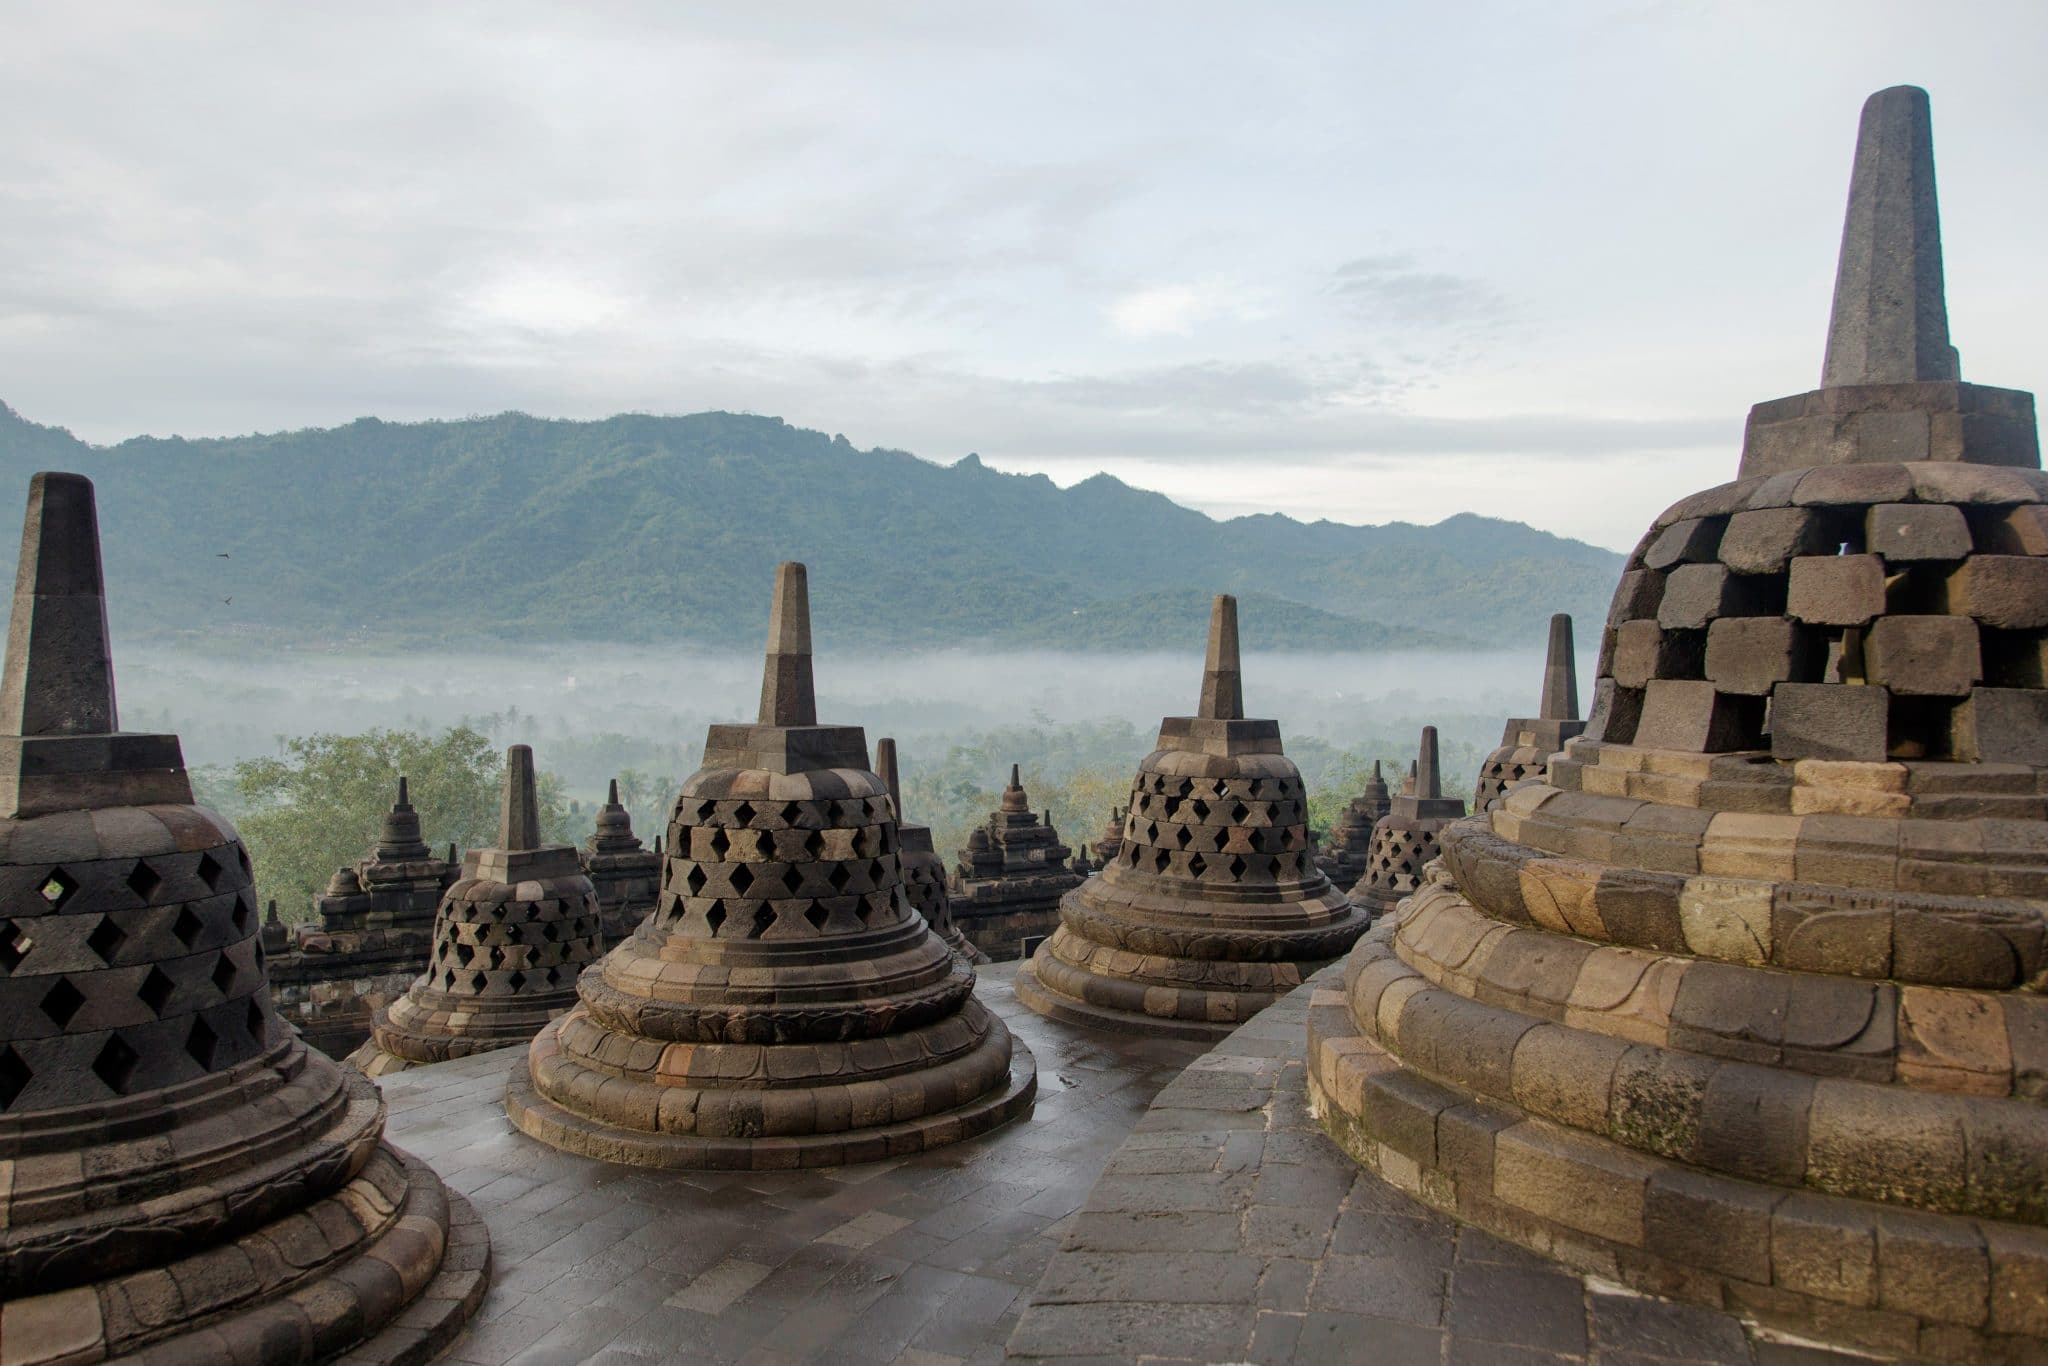 Sacred Sites, Top 10 Beautiful Sacred Sites Around the World that You Must Visit (Updated 2021), Phenomenal Place